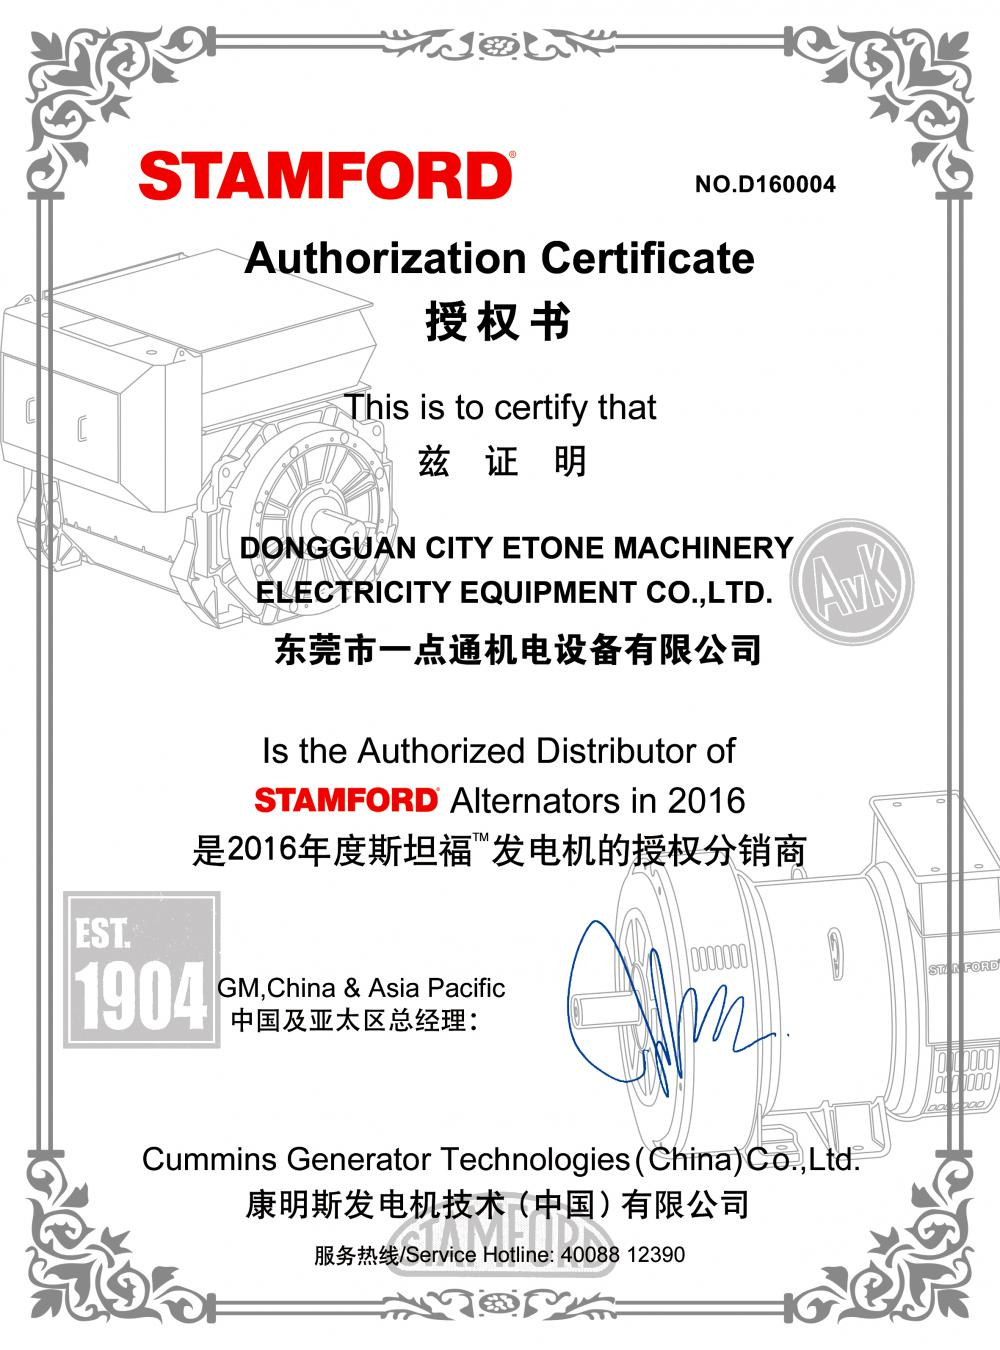 STAMFORD OME CERTIFICATE